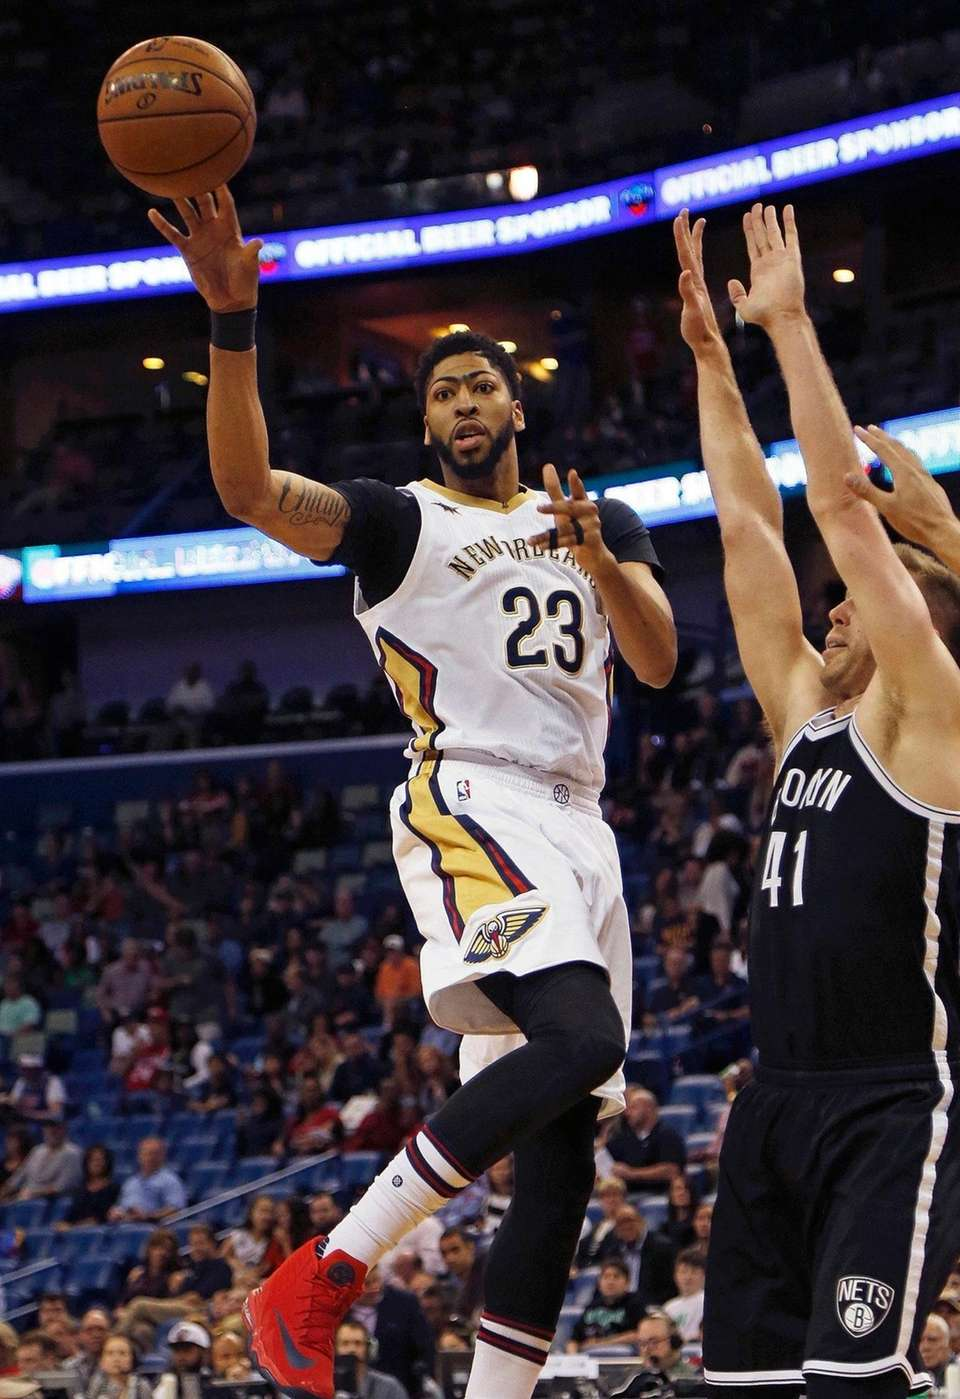 New Orleans Pelicans forward Anthony Davis (23) makes